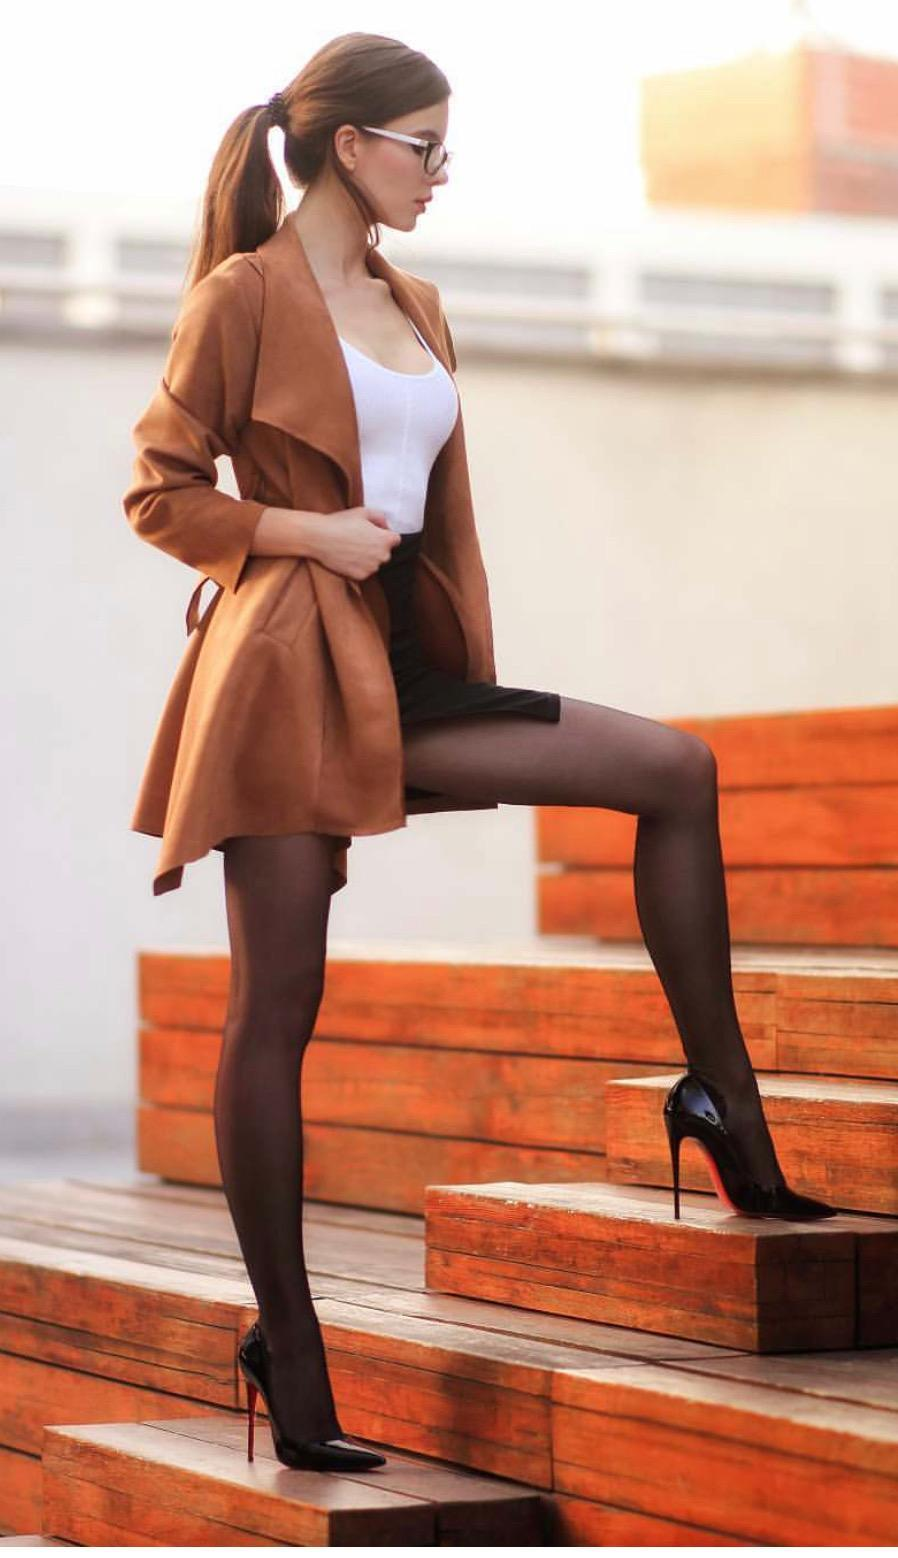 Brunette Teen Babe Outdoor Stairs Nn Pantyhose Nylons Heels Legs Ass Nicebody Handsoverhead Sexy Erotic Sultry Hot Busty